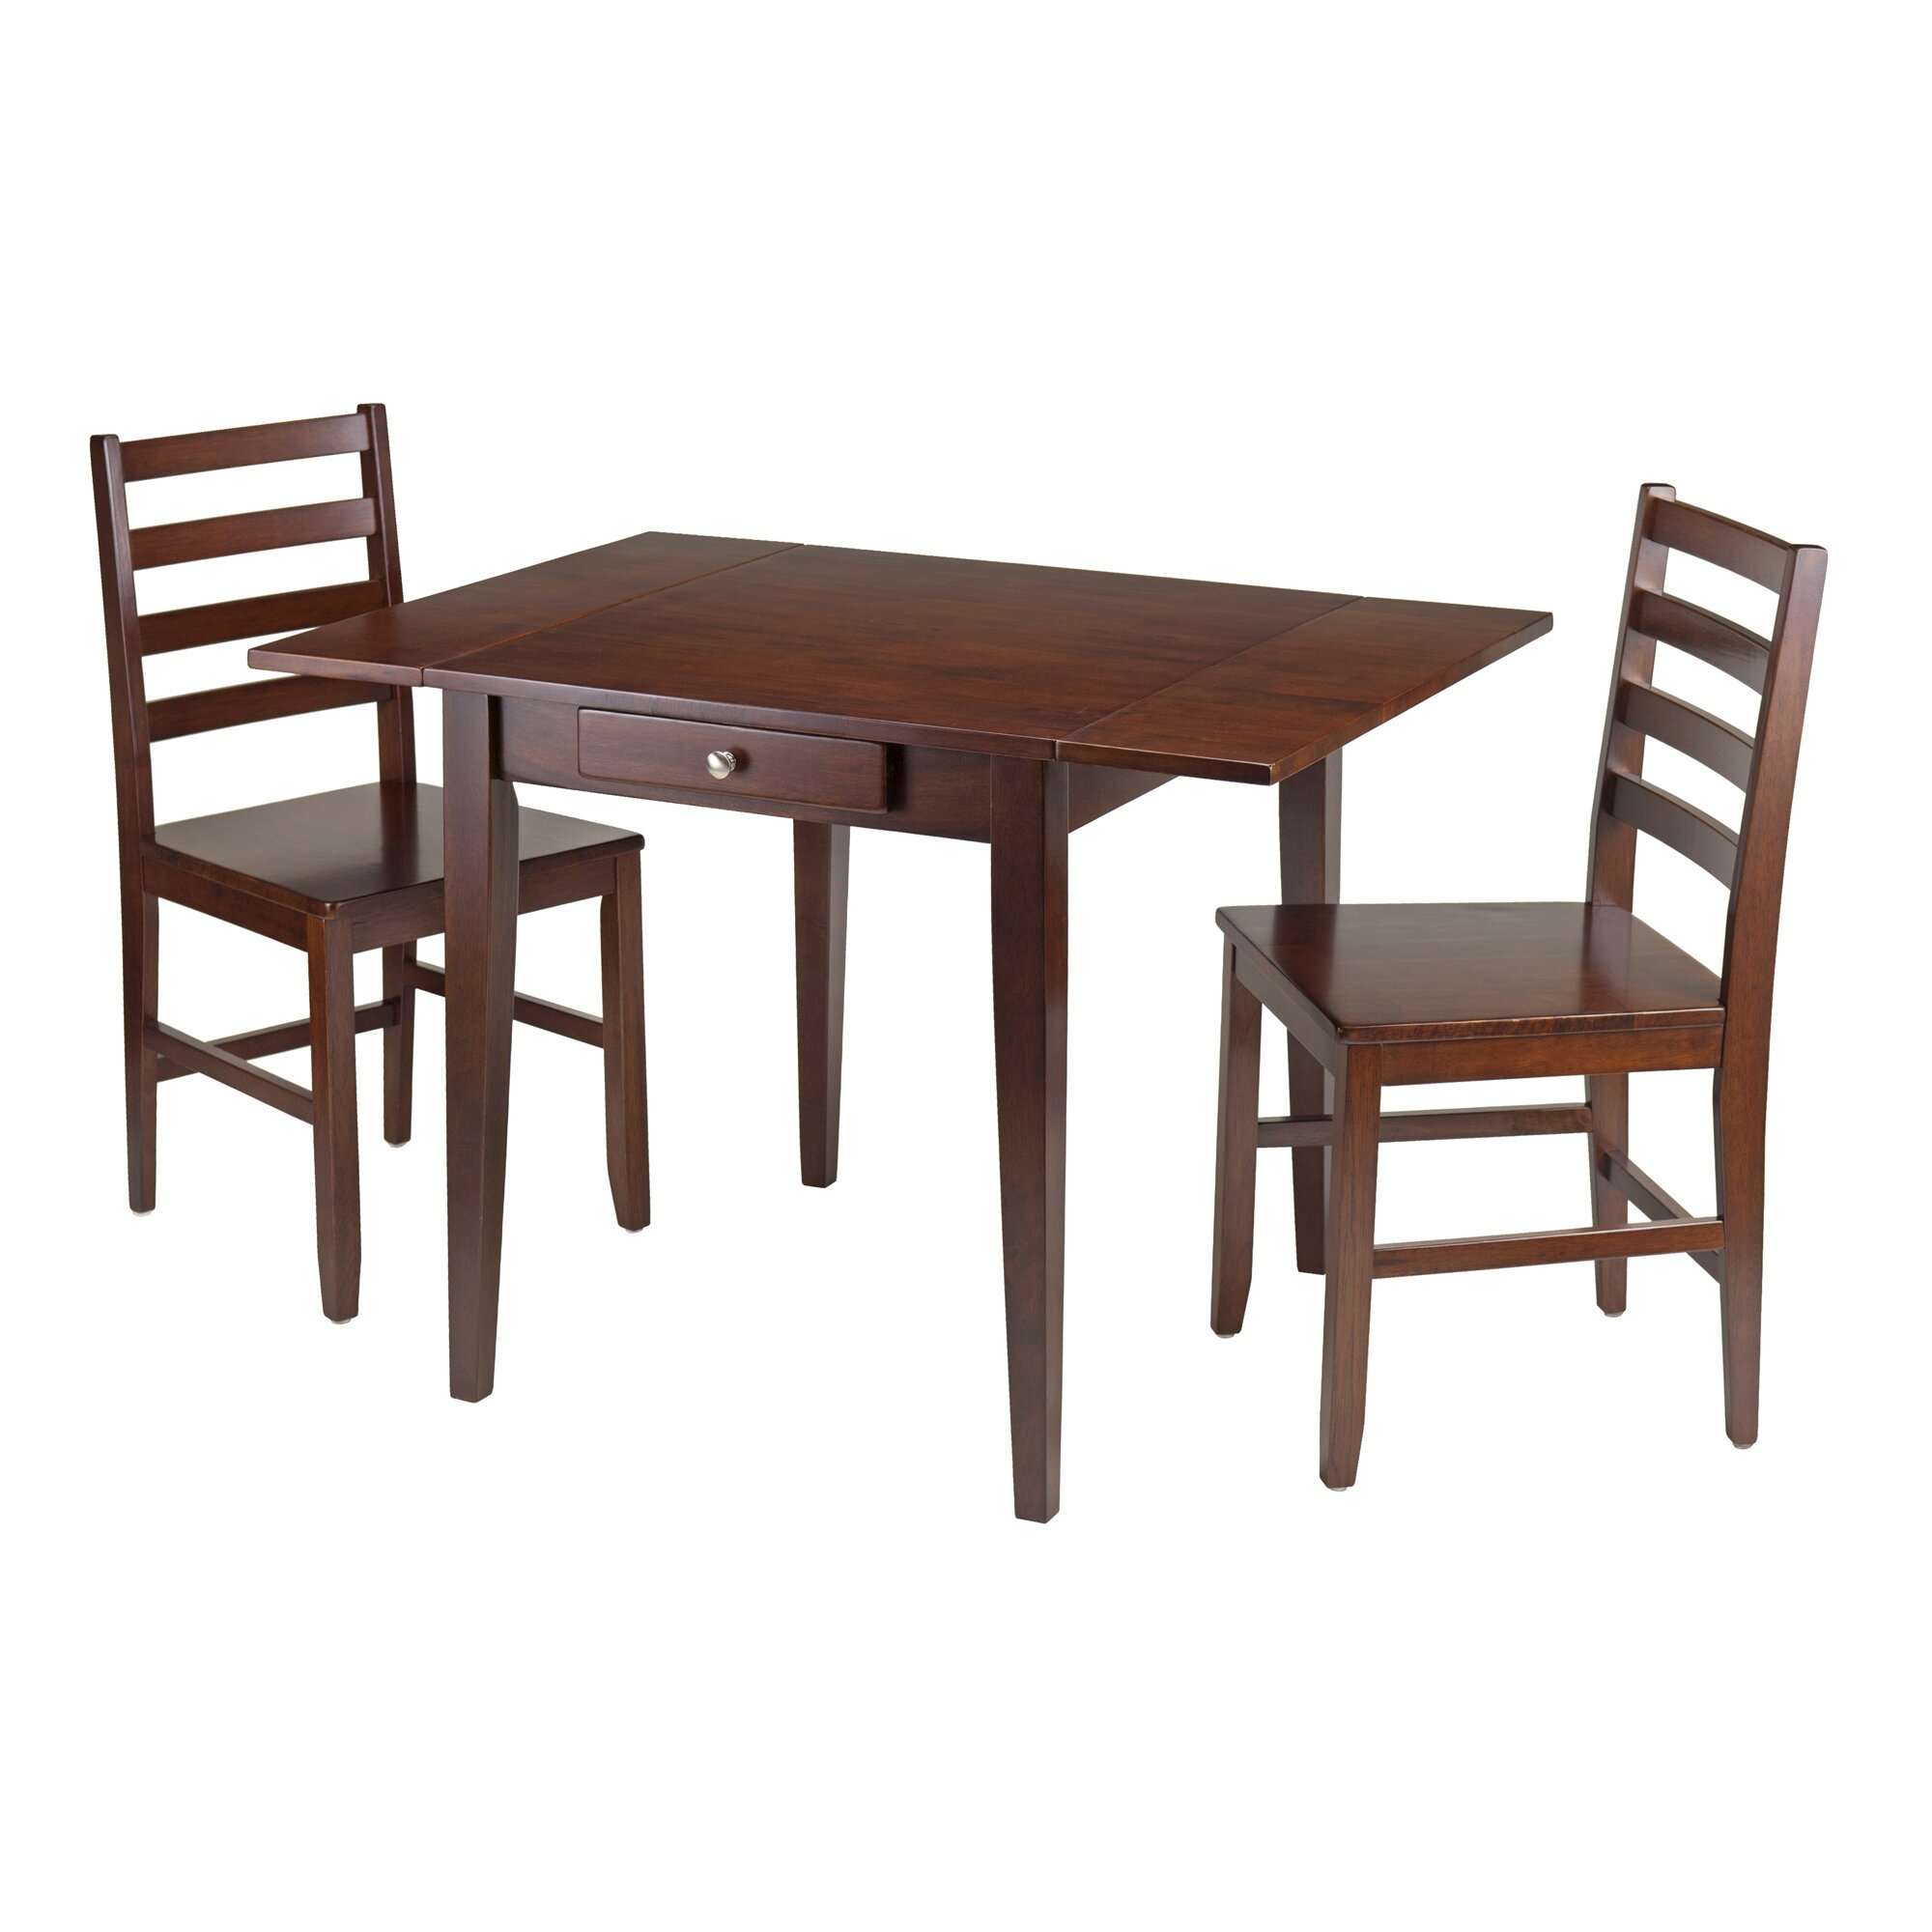 winsome hamilton 3 piece dining table set reviews wayfair. Black Bedroom Furniture Sets. Home Design Ideas